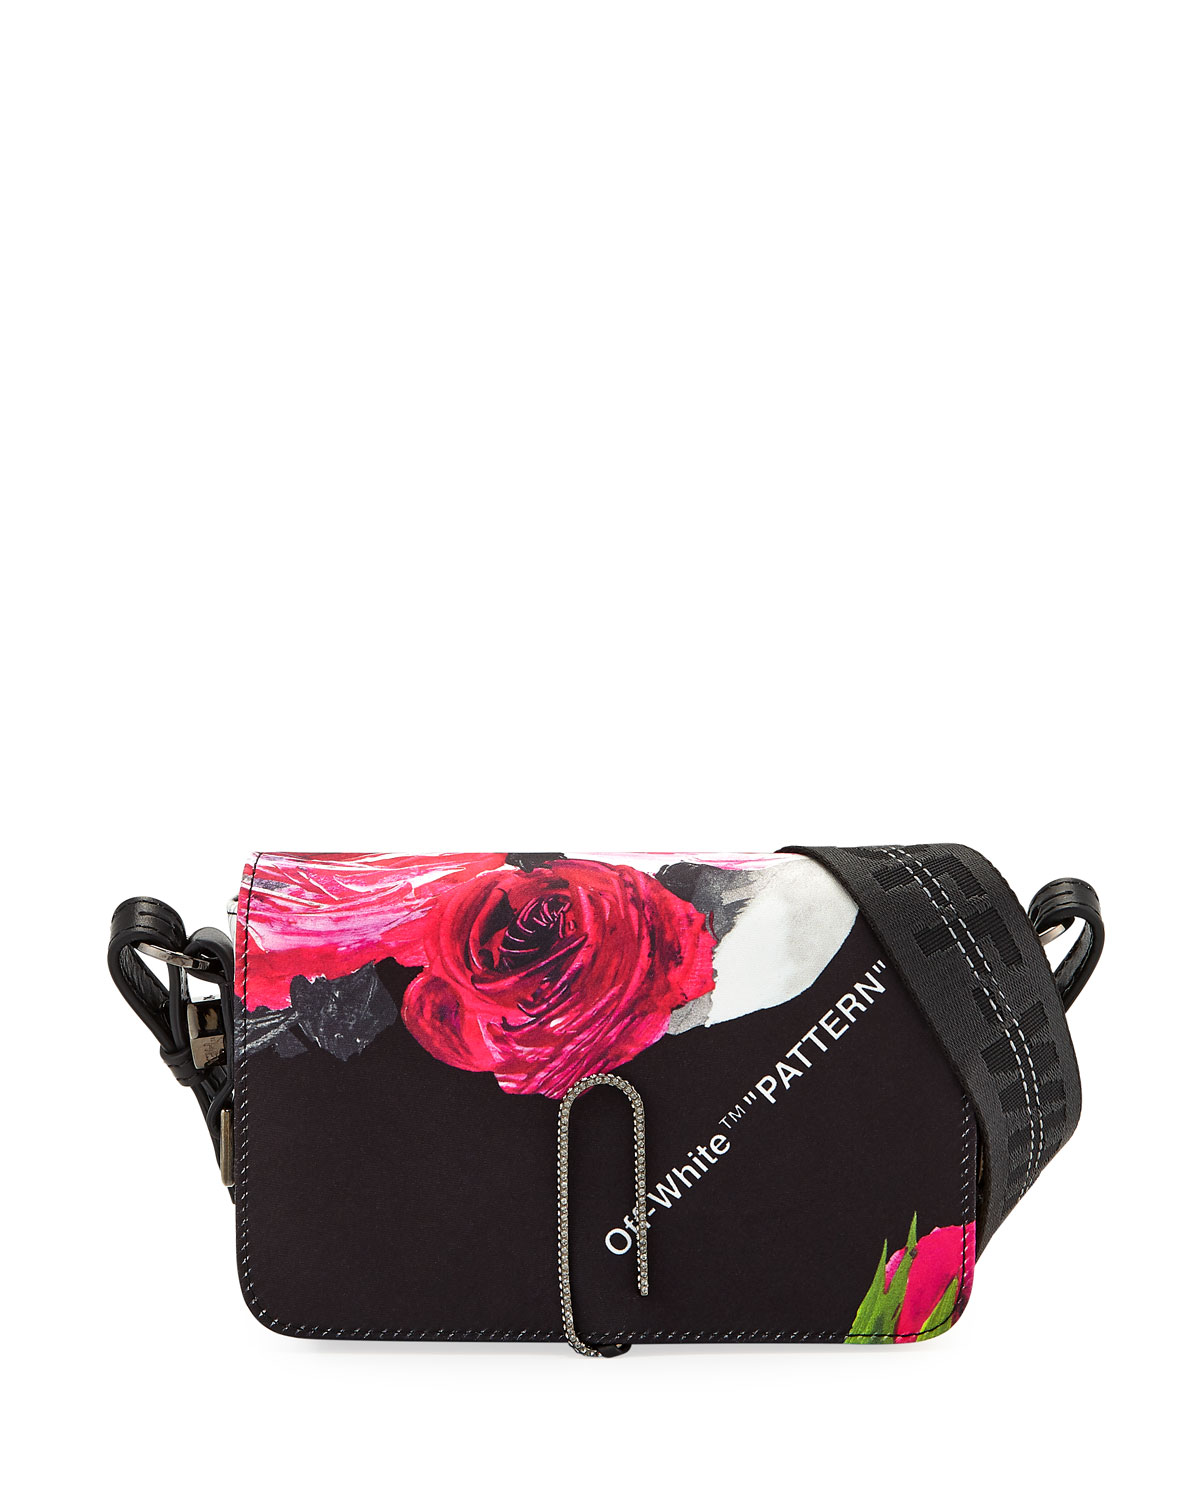 d9350d6d3e26 Off-White Floral Pattern Mini Flap Crossbody Bag